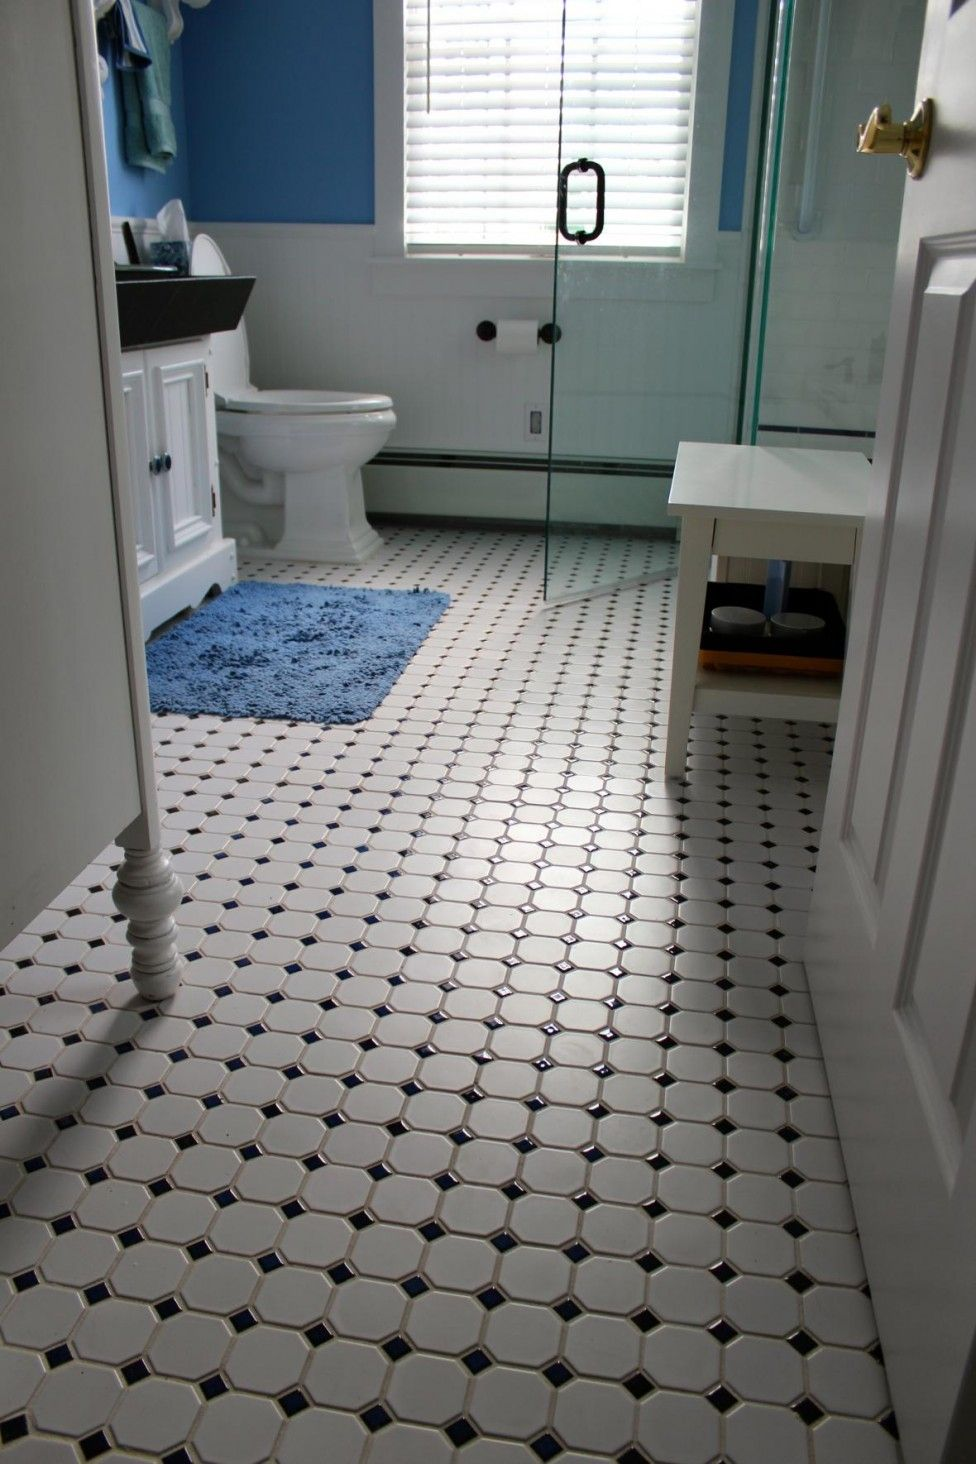 Appealing Black And White Bathrooms Tile Octagon With Black Dotted Bathroom Floor Tile Eas In